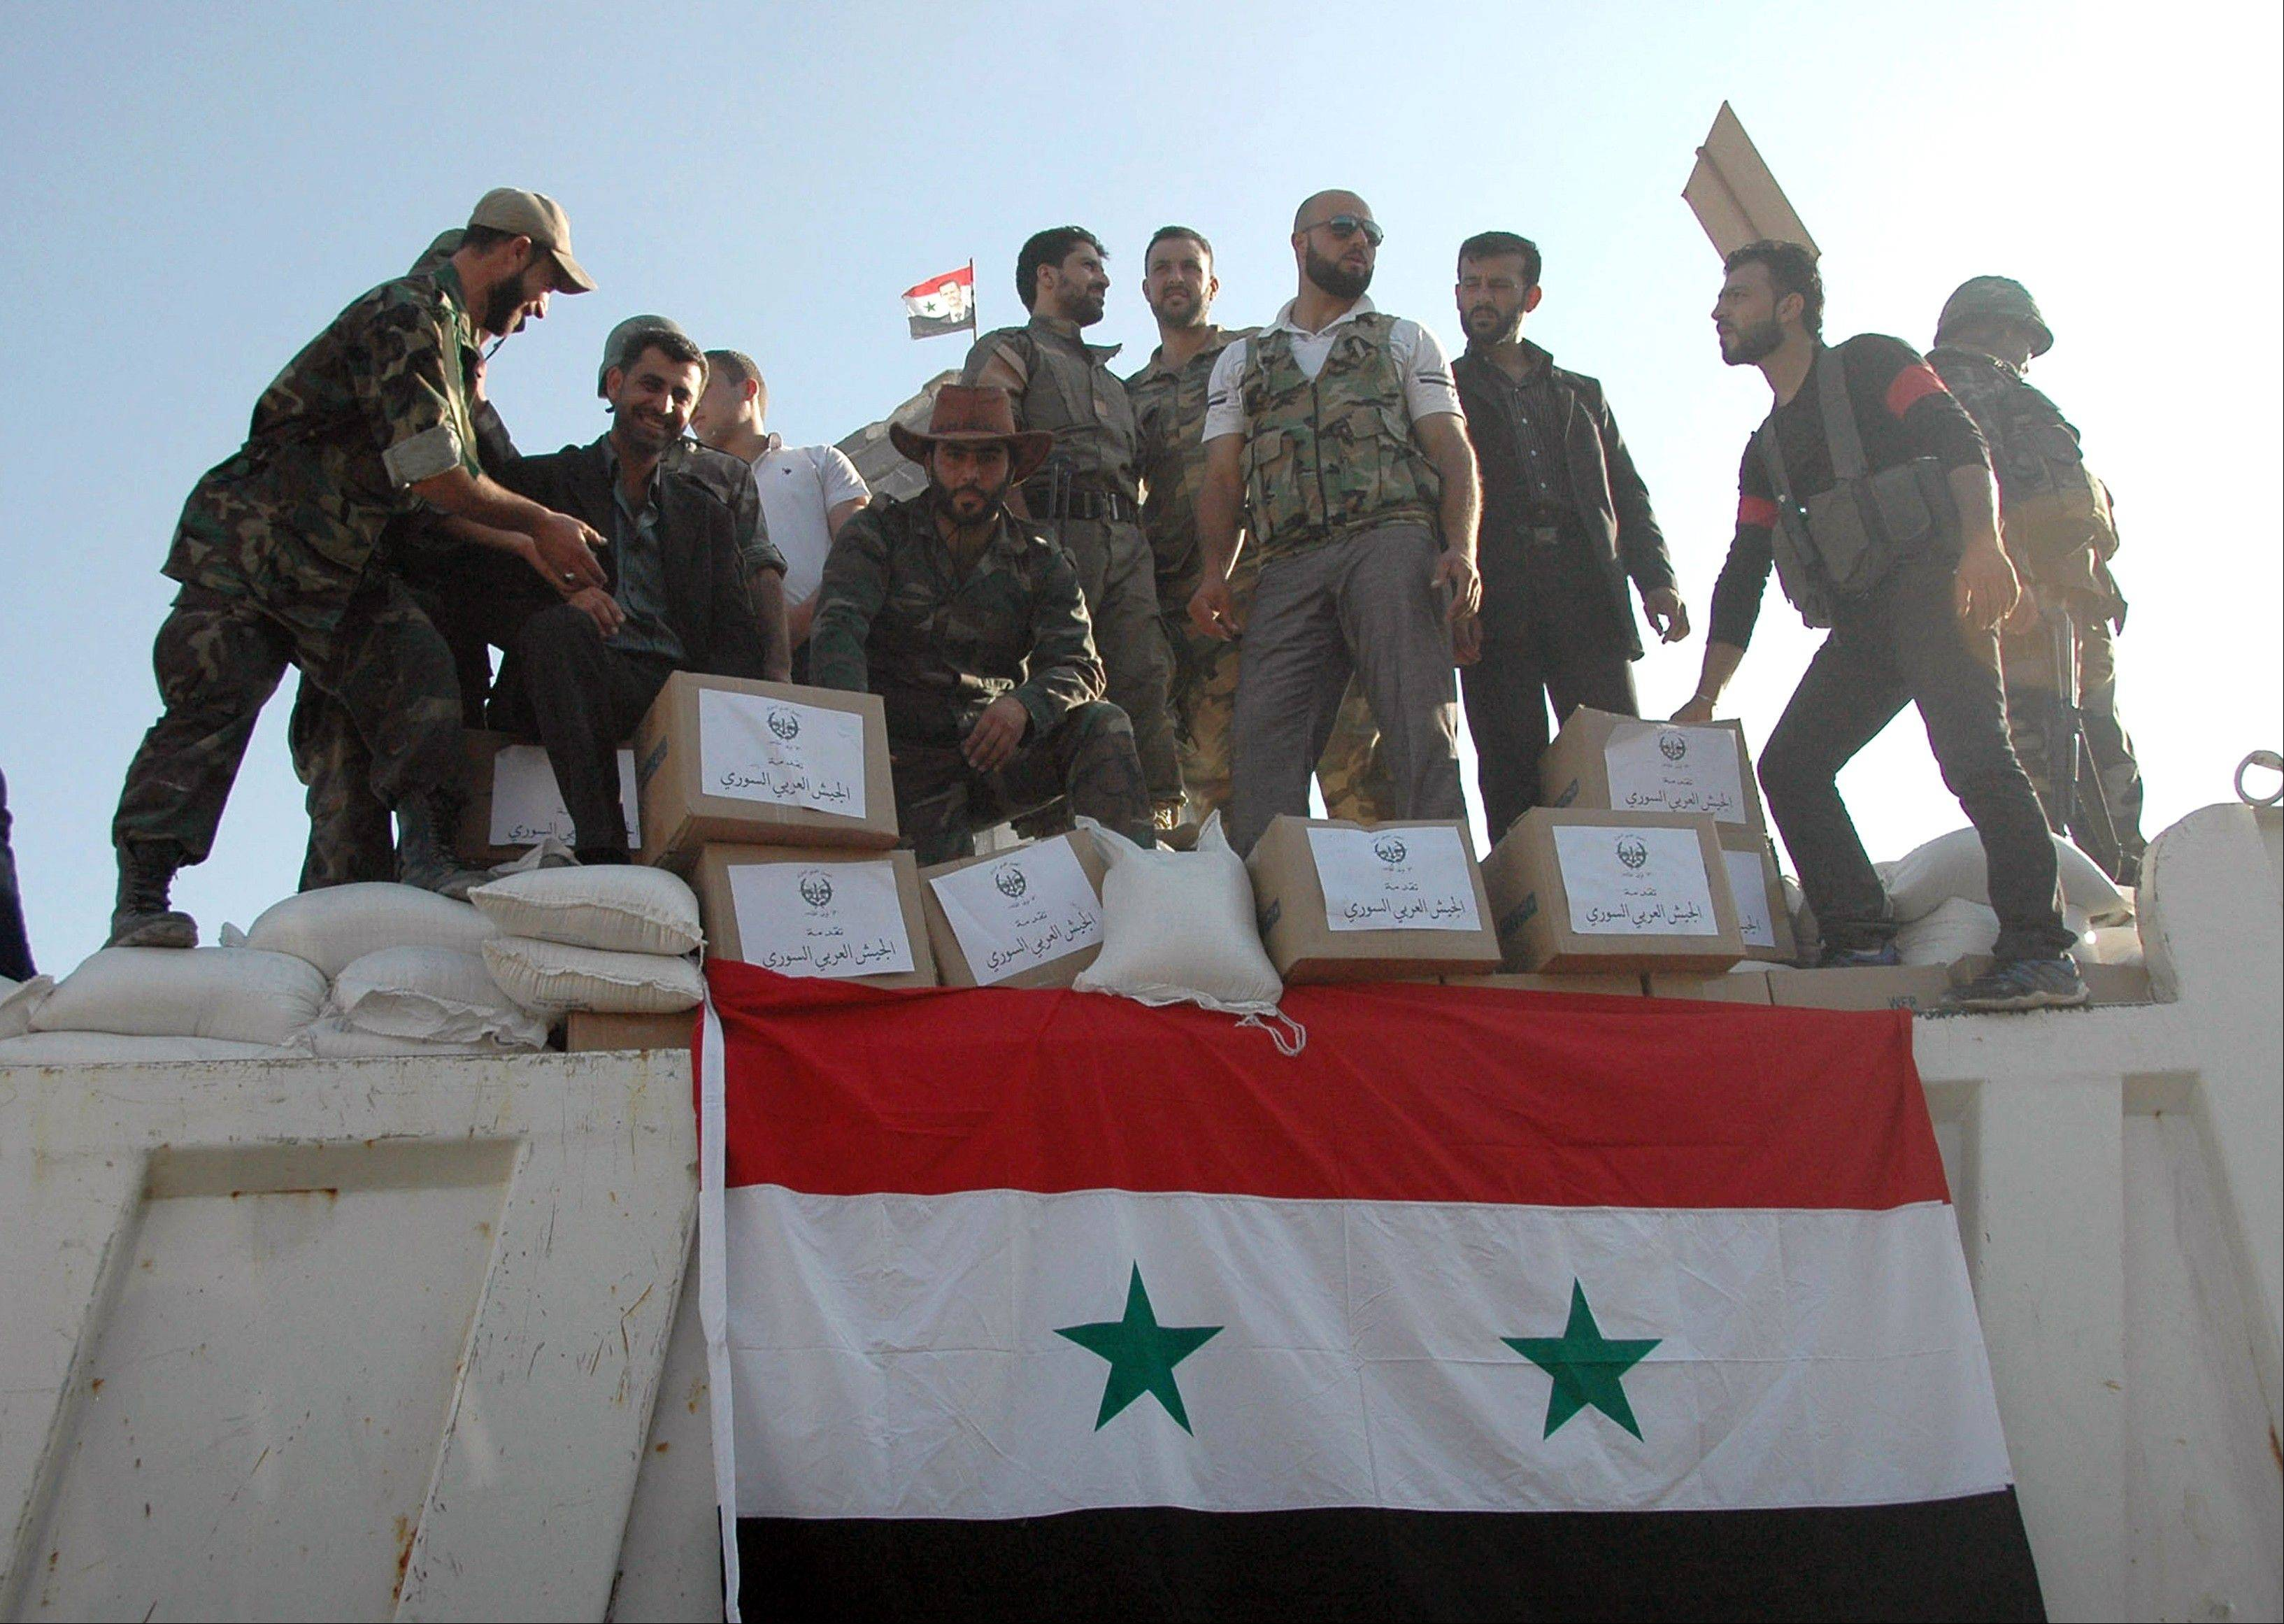 In this photo released Wednesday by the Syrian official news agency SANA, Syrian soldiers loyal to President Bashar Assad stand on a truck full of aid supplies, in Qusair, Syria. Syrian troops and their Lebanese Hezbollah allies captured a strategic border town Wednesday after a grueling three-week battle, dealing a severe blow to rebels and opening the door for President Bashar Assad�s regime to seize back the country�s central heartland. The regime triumph in Qusair, which Assad�s forces had bombarded for months without success, demonstrates the potentially game-changing role of Hezbollah in Syria�s civil war.